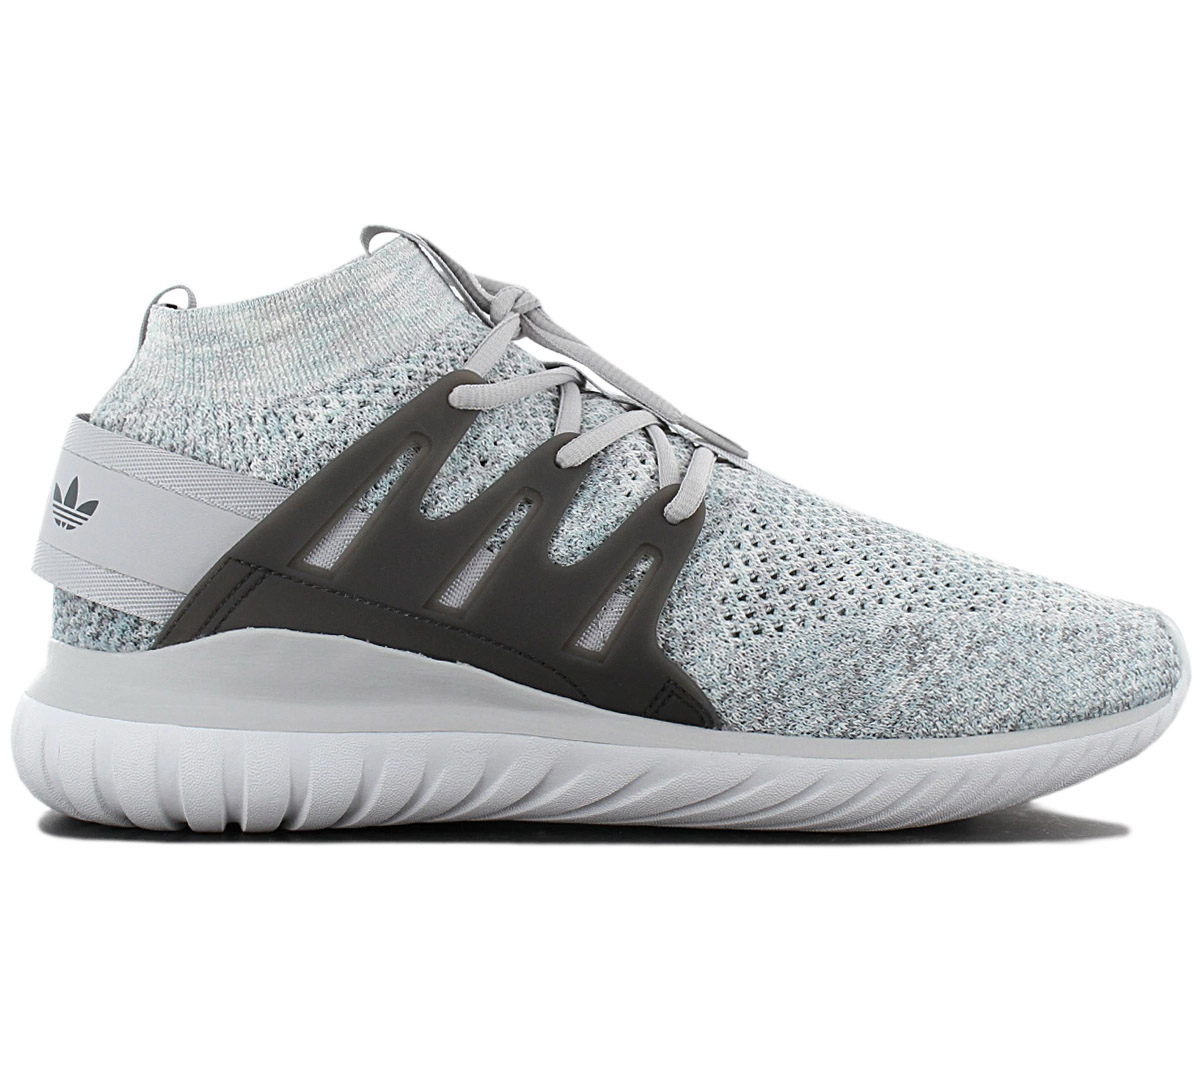 Details about Adidas Originals Tubular Nova Pk Primeknit Men's Sneaker BB8410 Grey Shoes New